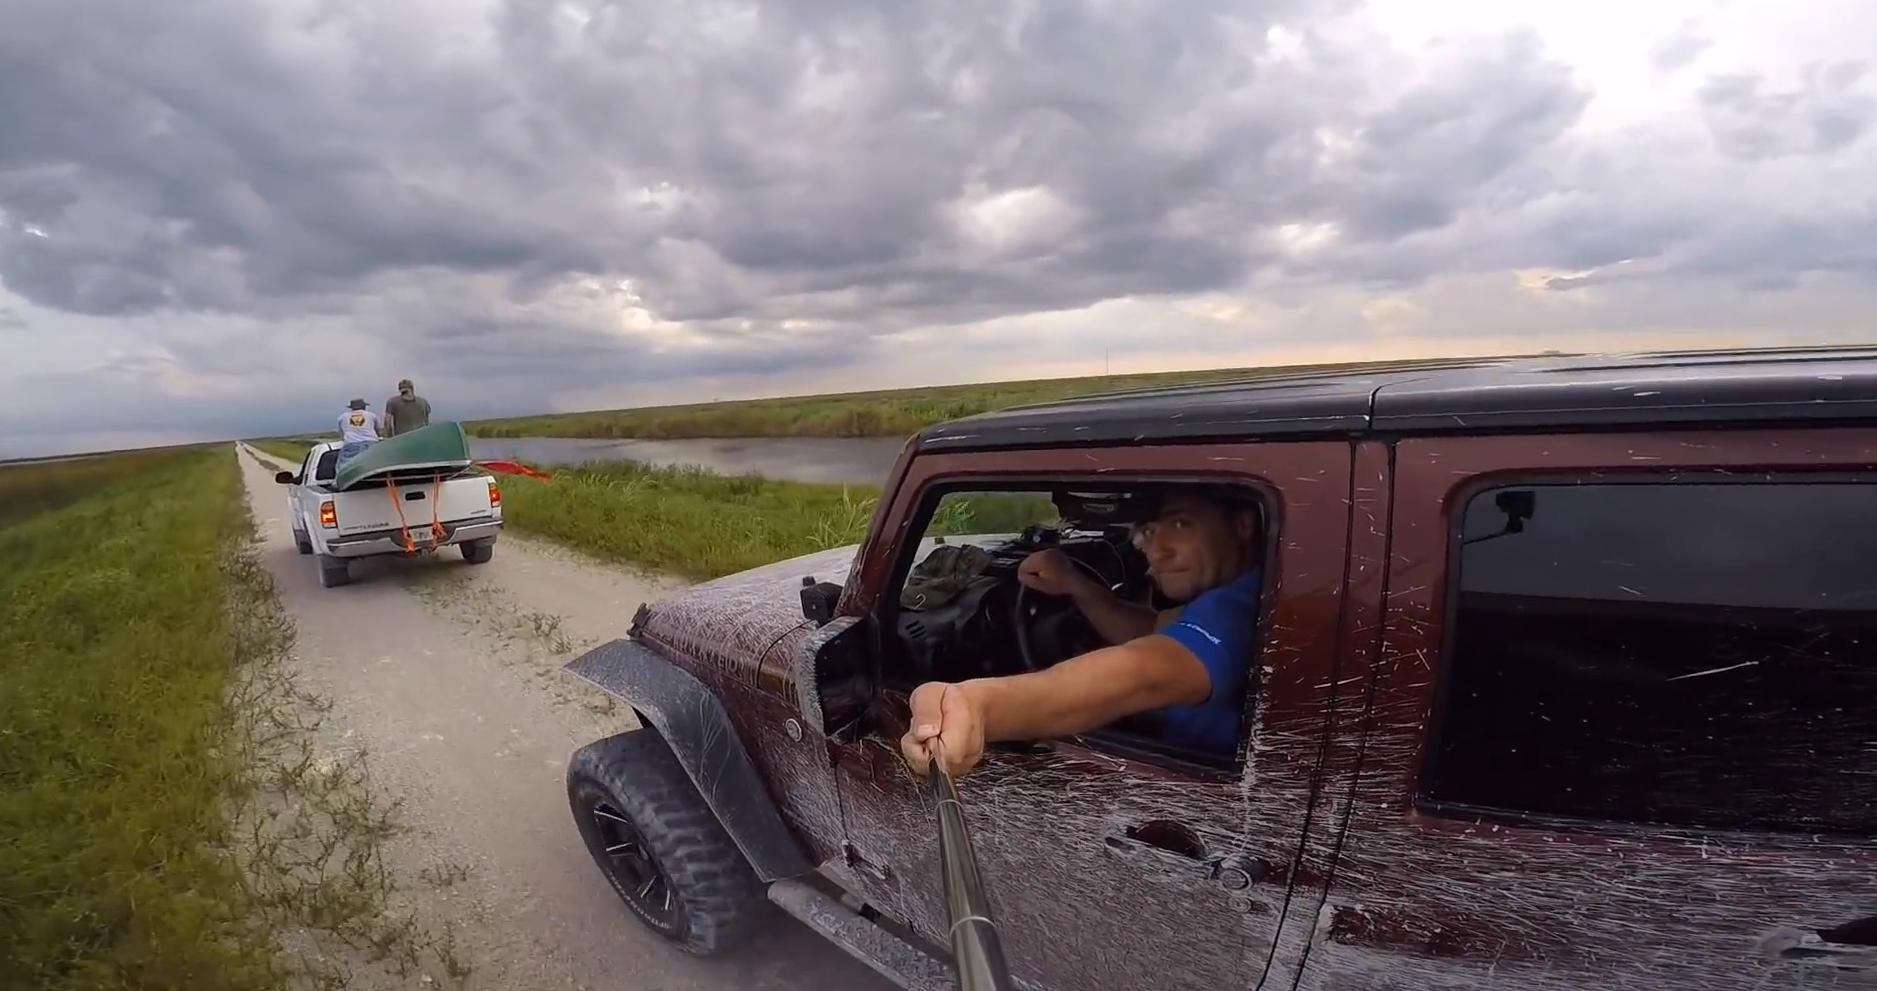 Idiot Selfie Stick Driver Crashes While Filming Himself